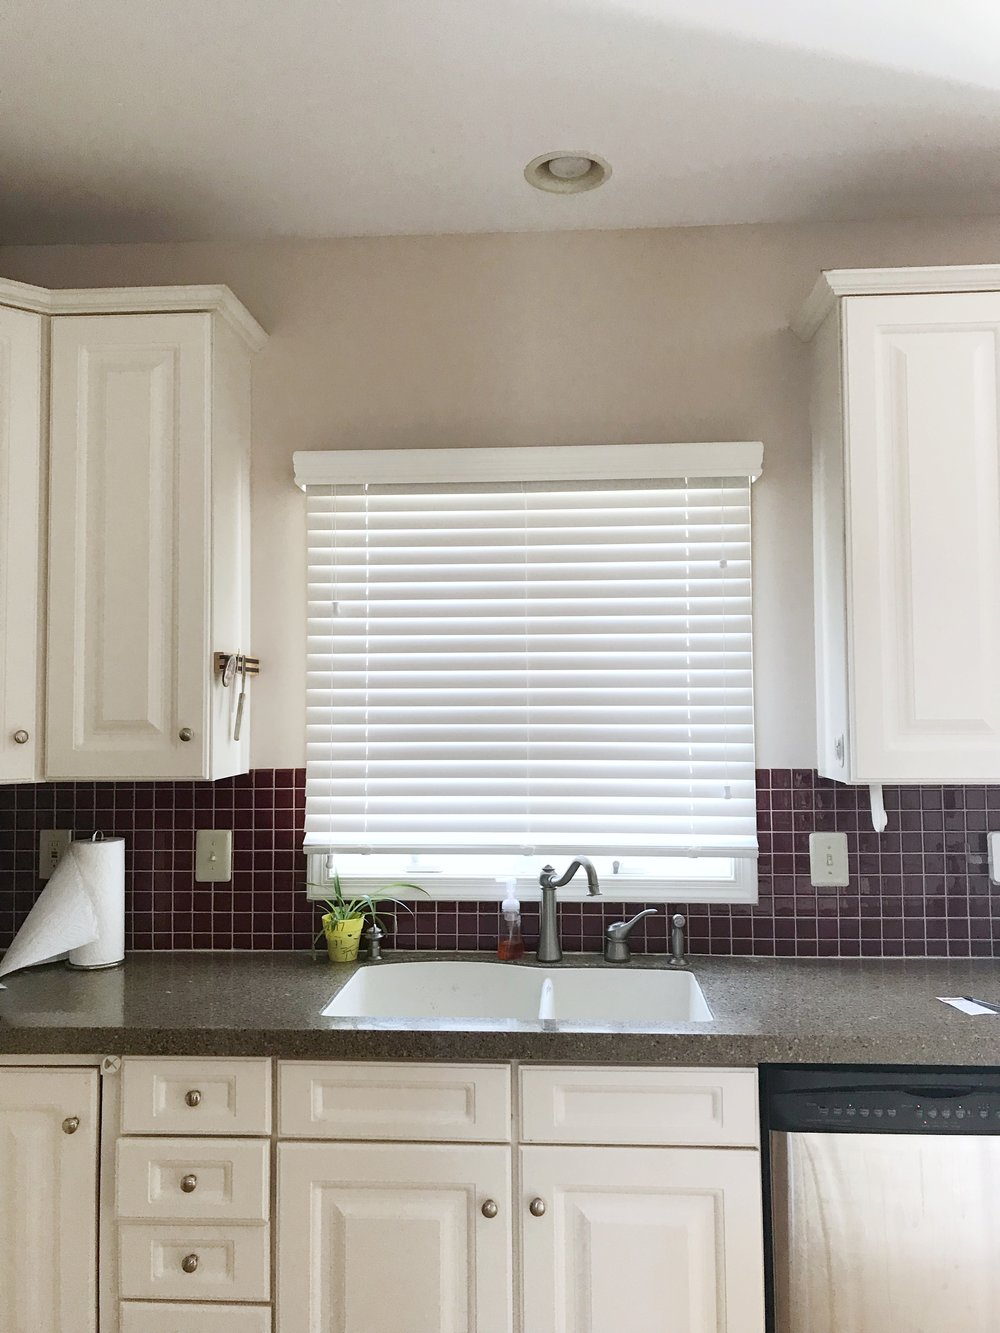 3rdGenBlinds white custom white window blinds over sink in kitchen